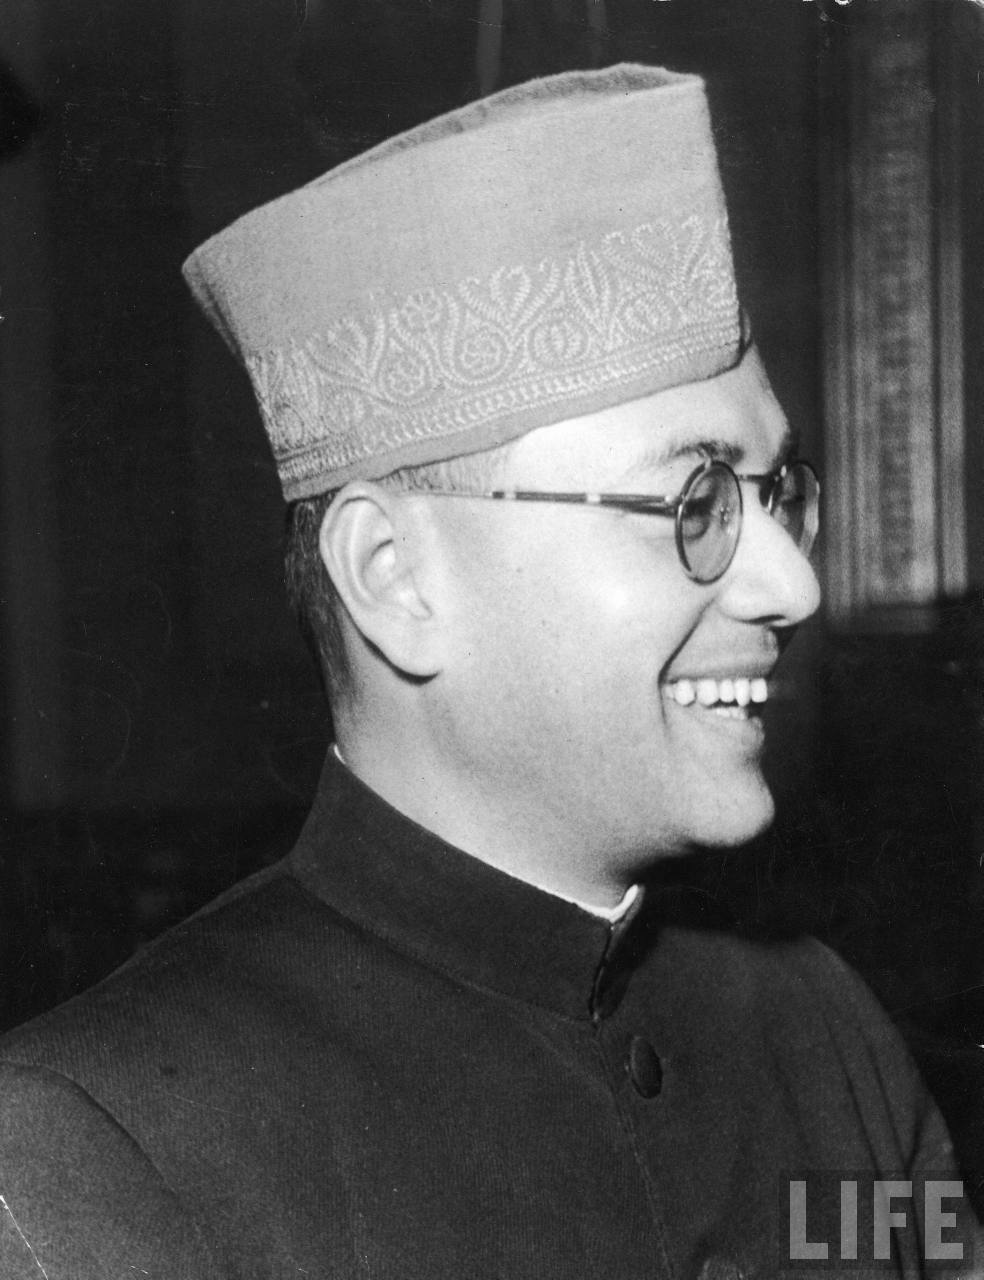 Subhas Chandra Bose in 1940